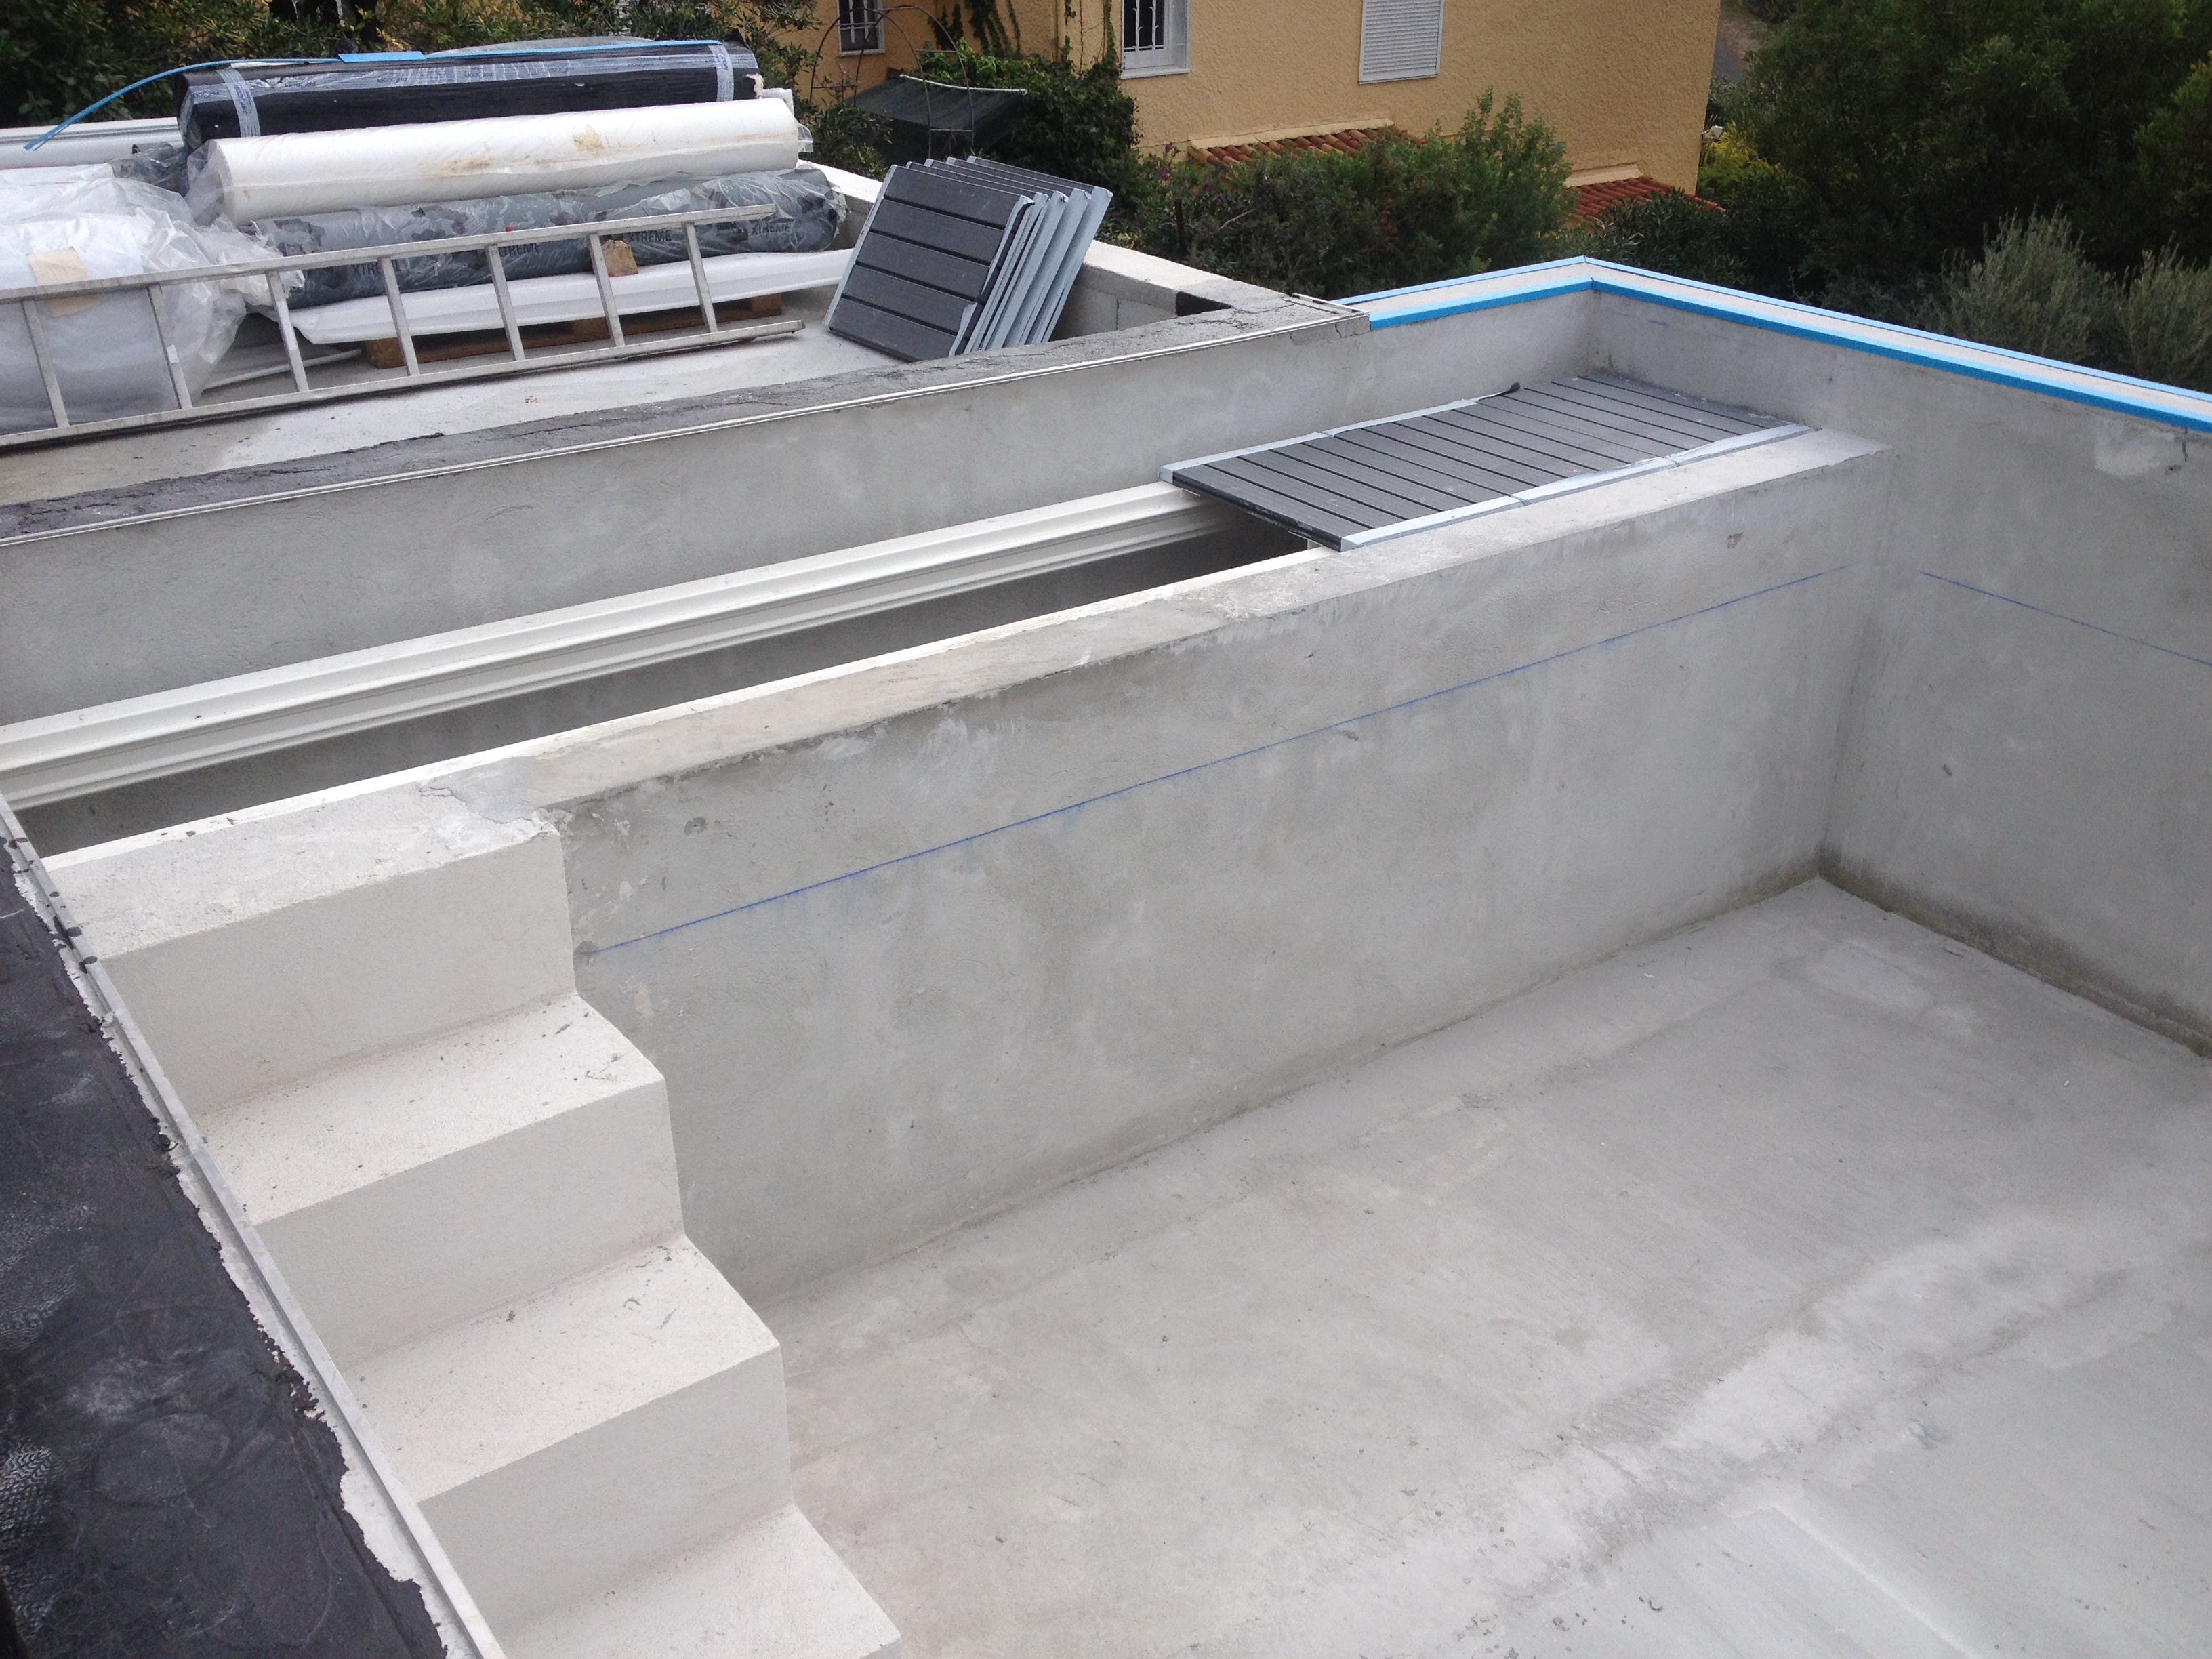 Une piscine en b ton arm d bordement carqueiranne for Piscine en beton